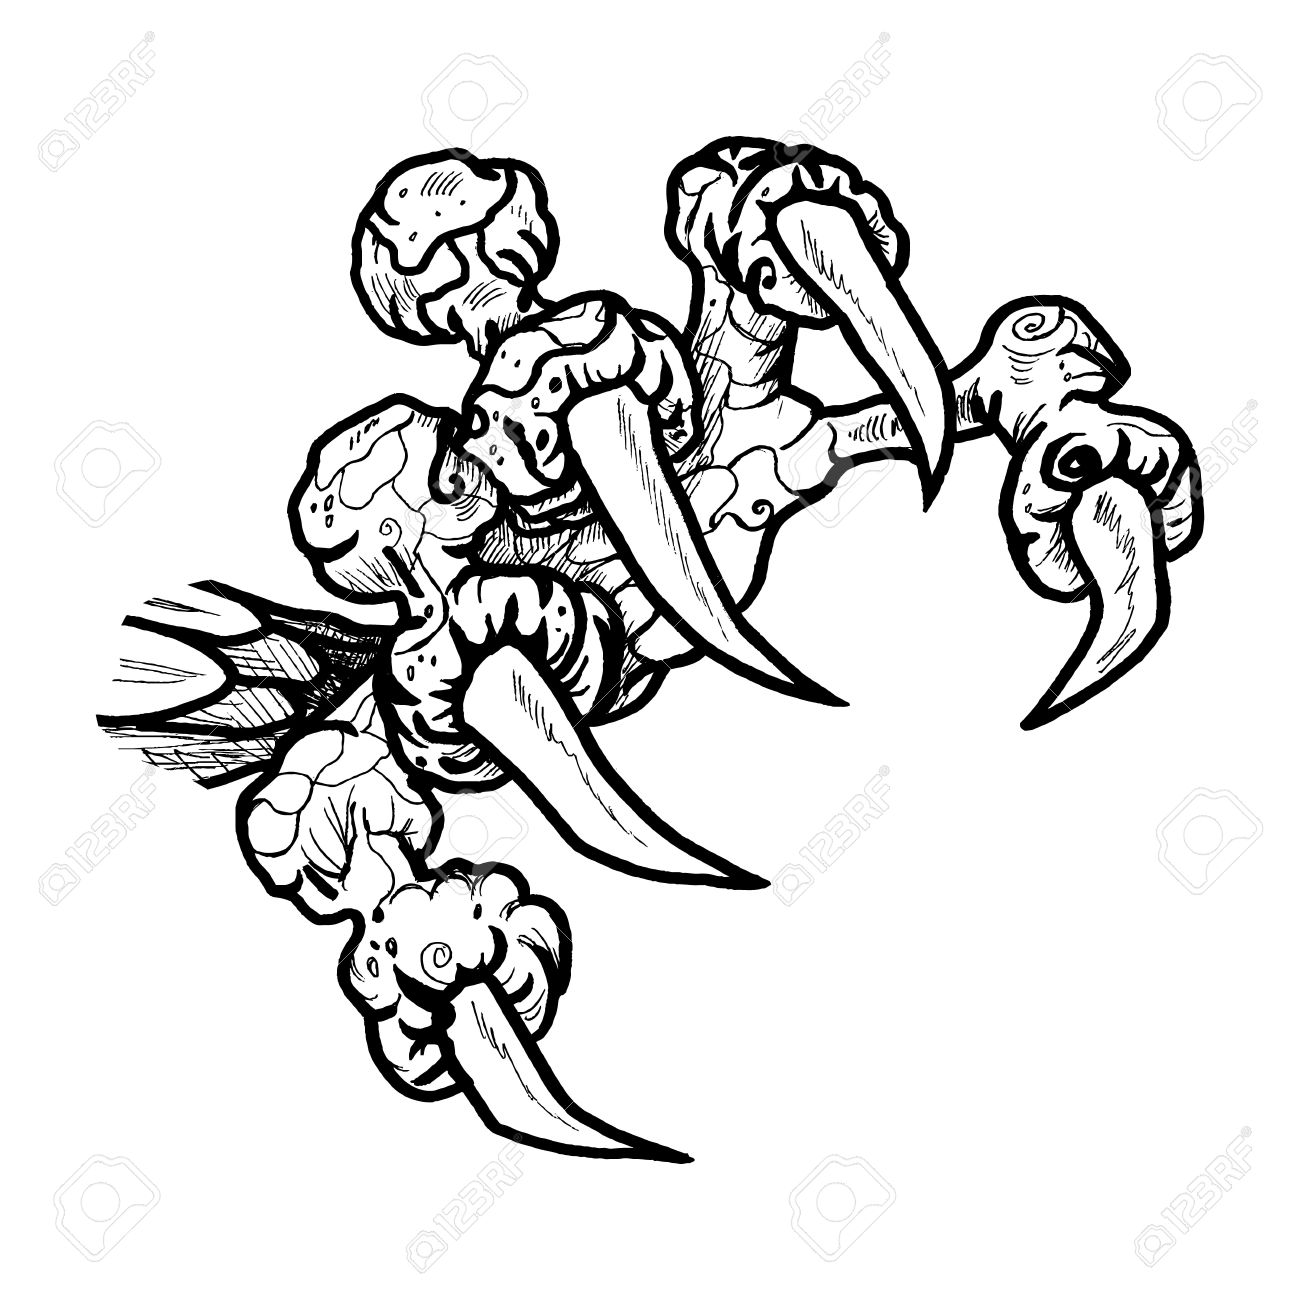 Dragon Or Monster Paw With Claws Wild Tattoo Horror Sticker